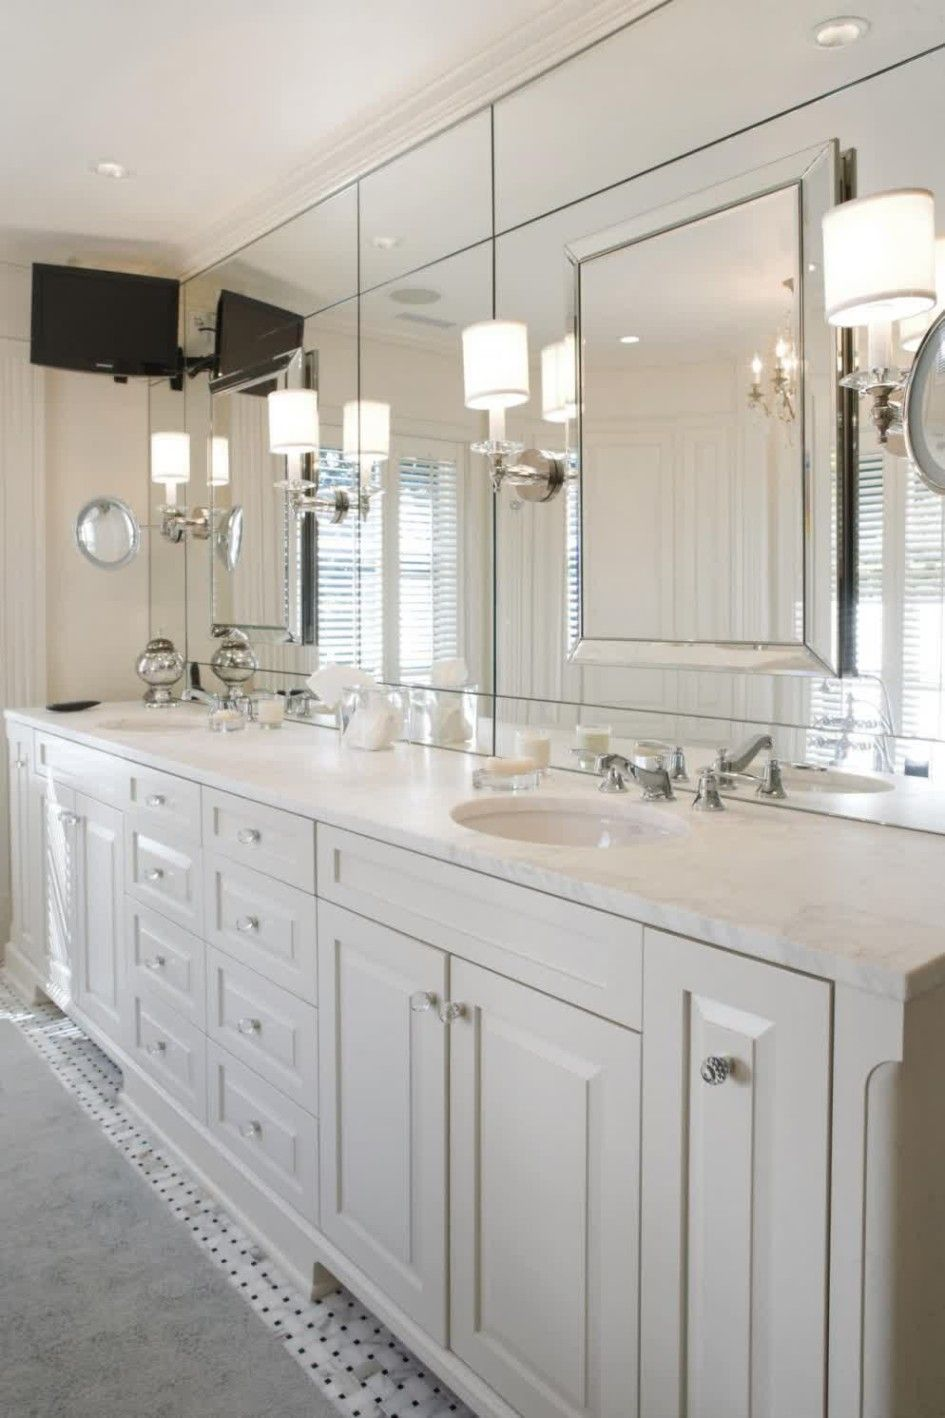 Wall Sconce Height Bathroom Above Sink : Bathroom Ideas, Modern Bathroom Wall Sconces With Large Frameless Mirror Above Double Sink ...